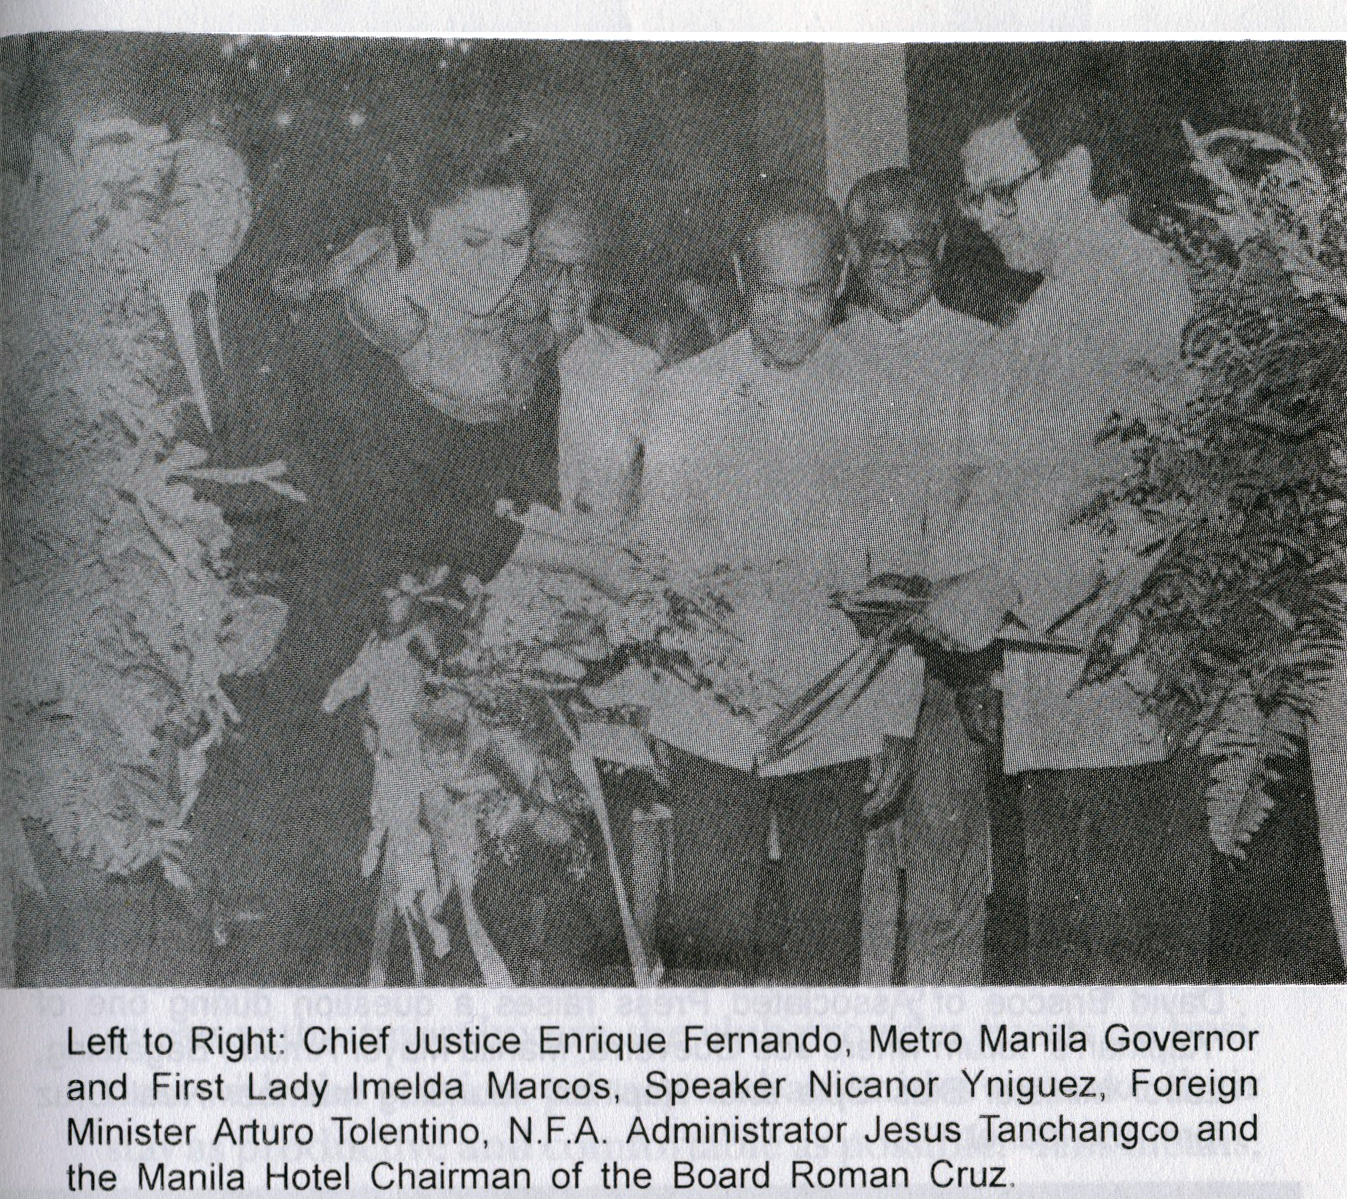 1980 Inauguration with Imelda Marcos and Board Chairman Roman Cruz.